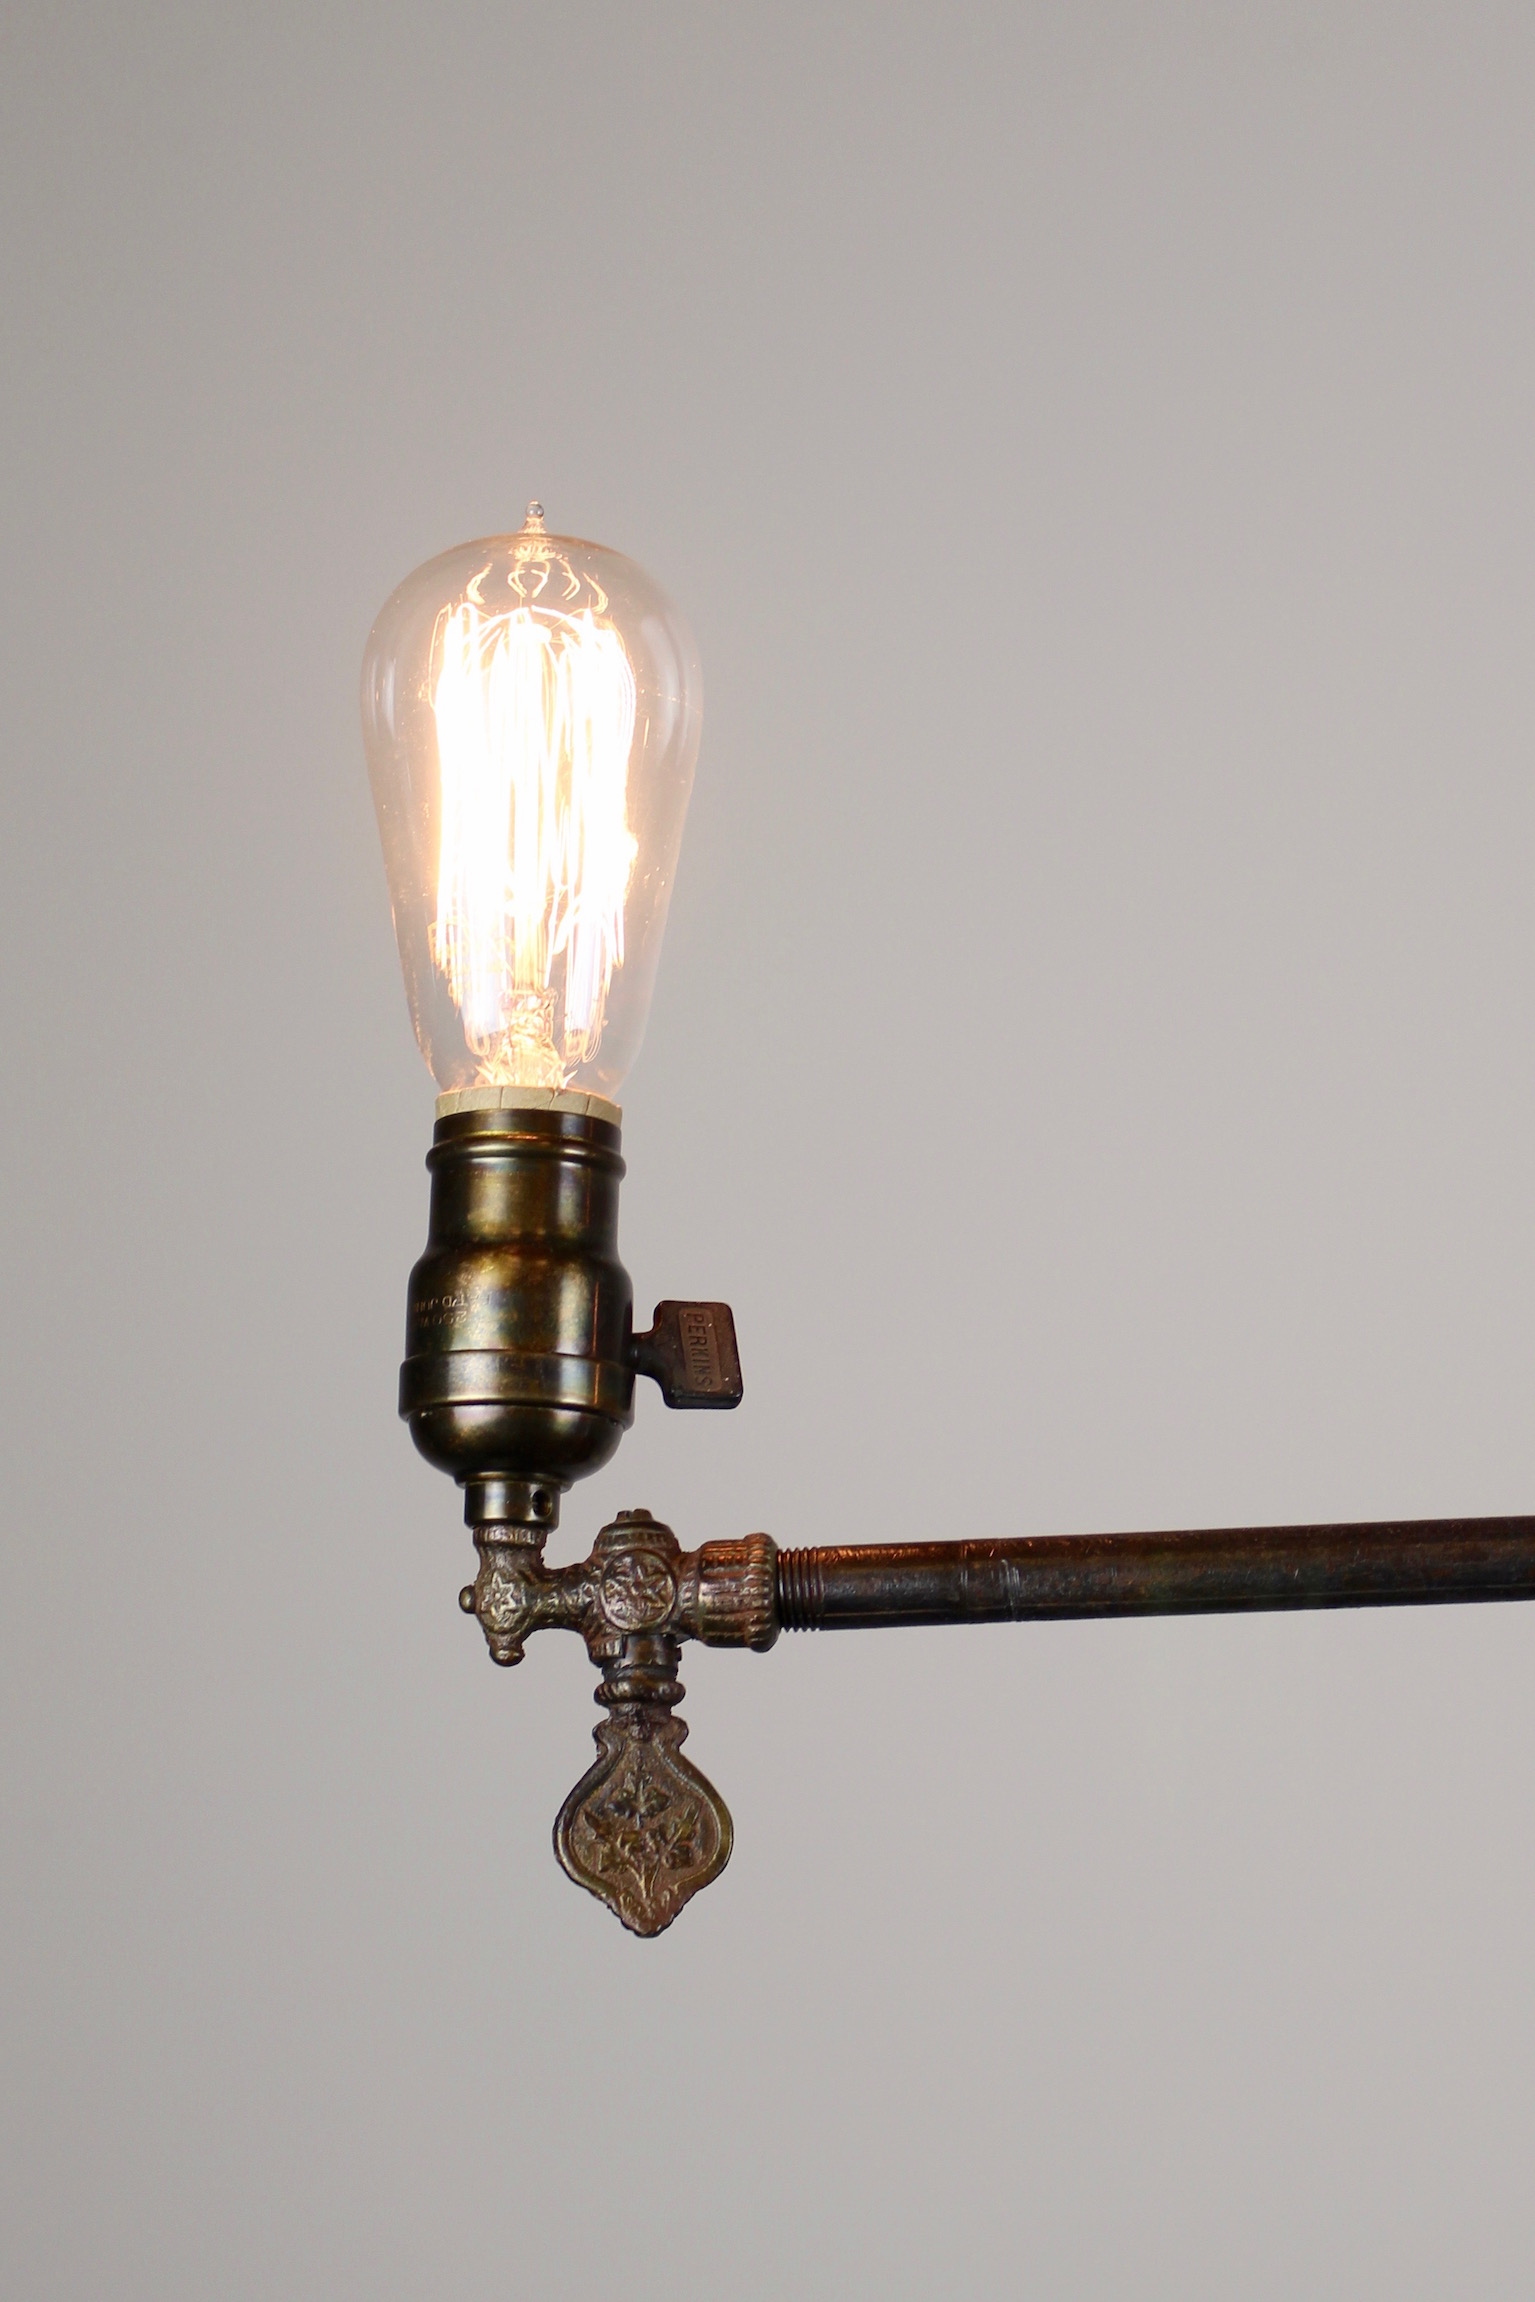 Original Industrial Gas Light Fixture Circa 1885 by Archer